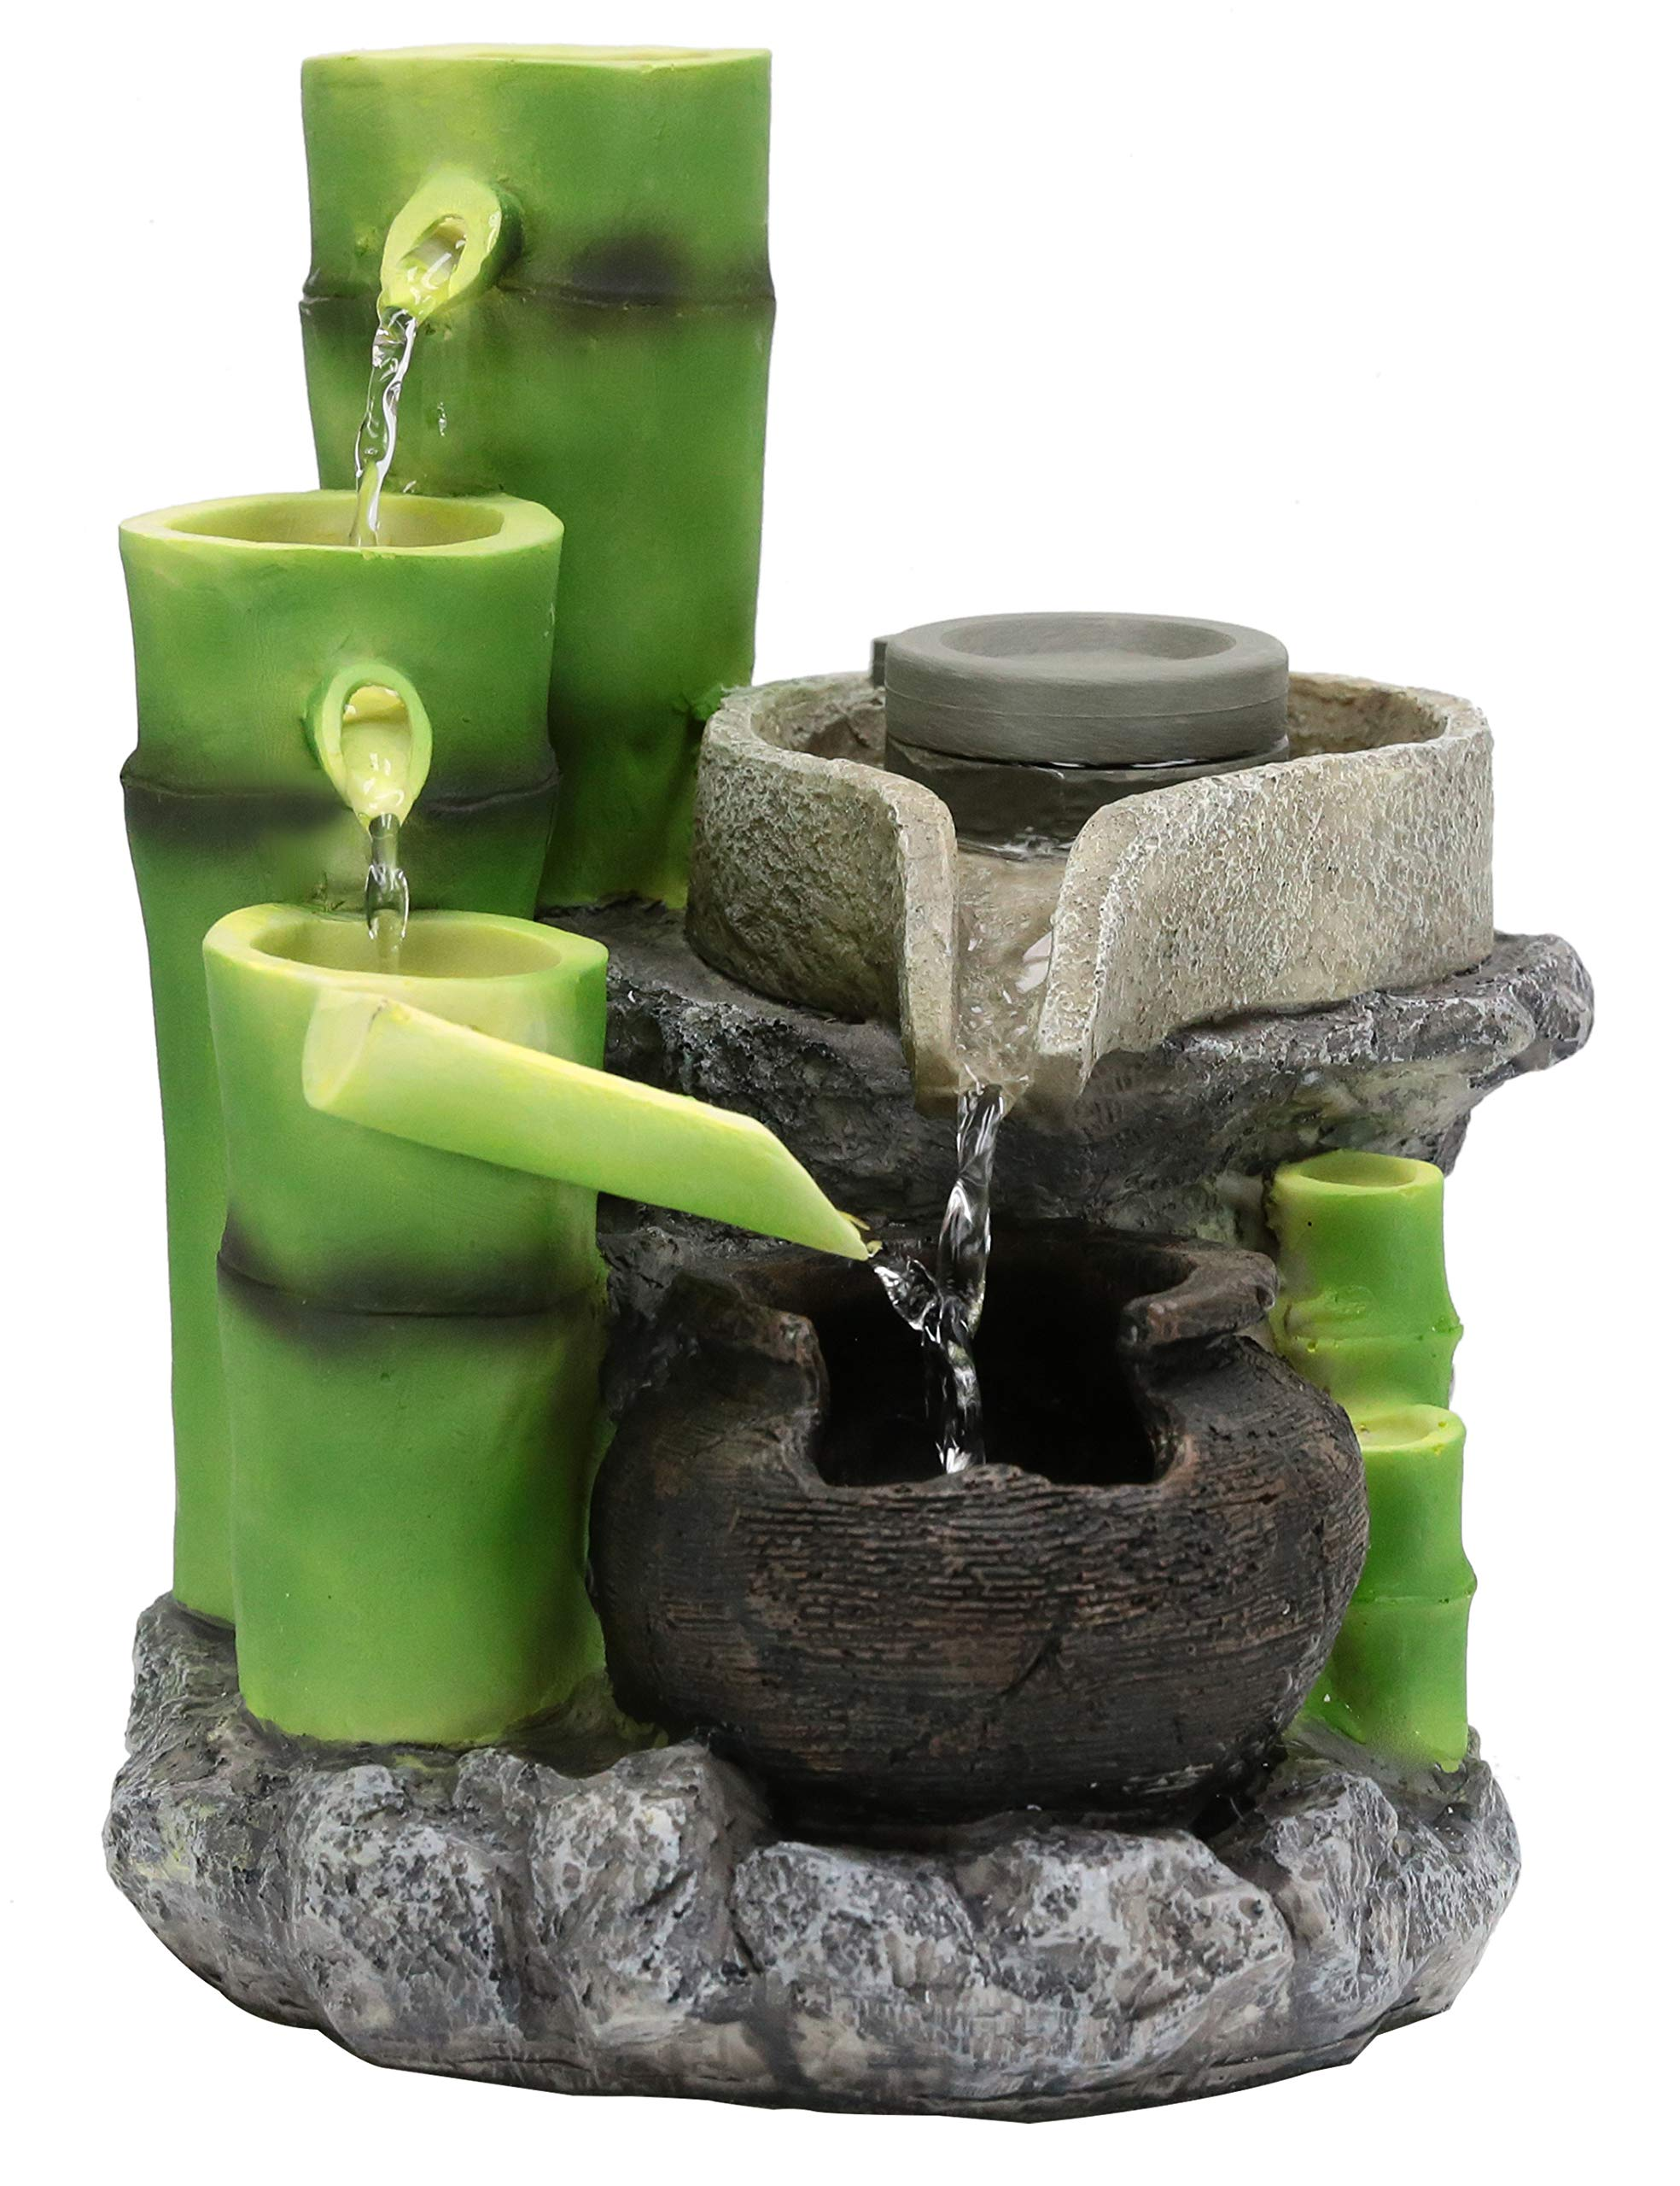 Fern Creek Balinese Inspired Tabletop Fountain with Dual Water Flows - Bali Fountain - Asian Fountain Indoor - Decorative Water Fountain - 8 W x 8 D x 10 H in by Fern Creek Home